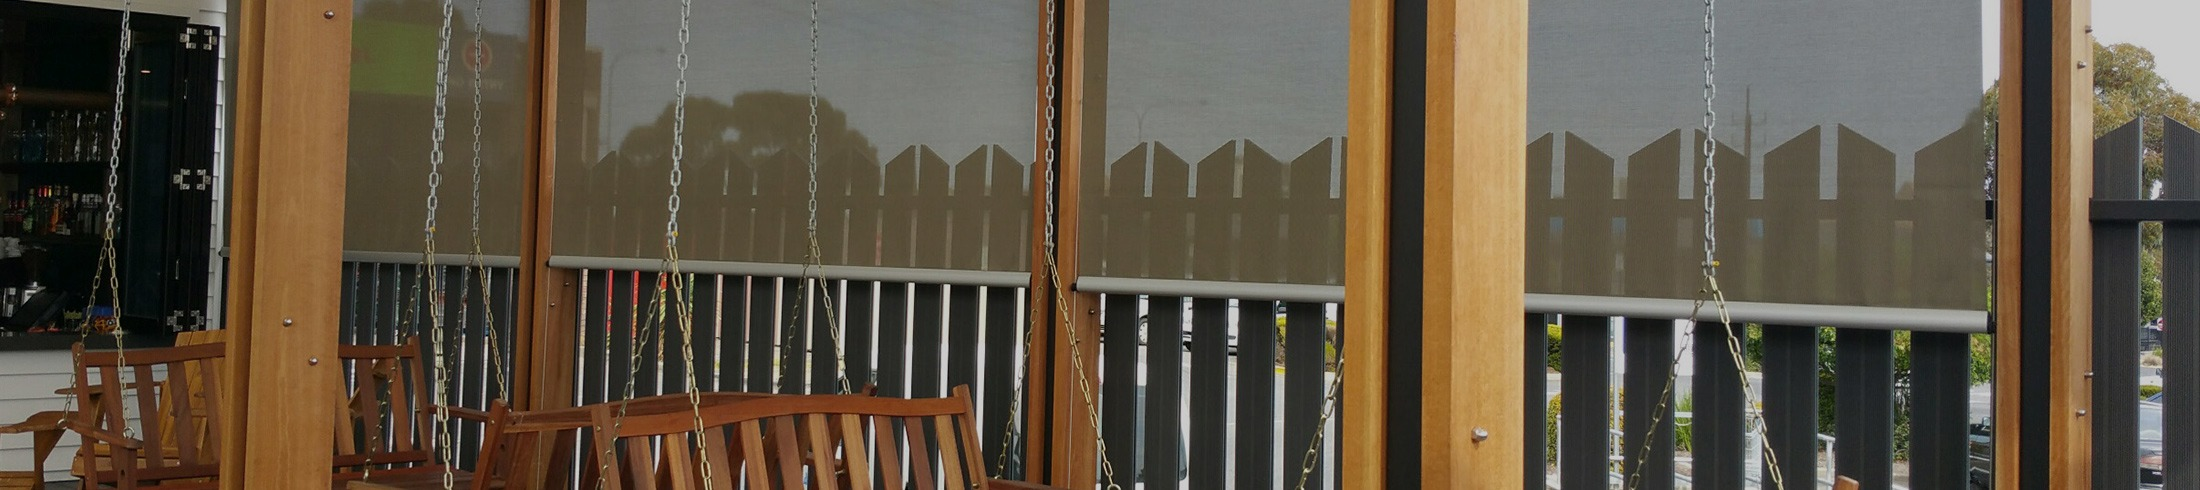 outdoor wire guided blinds 01